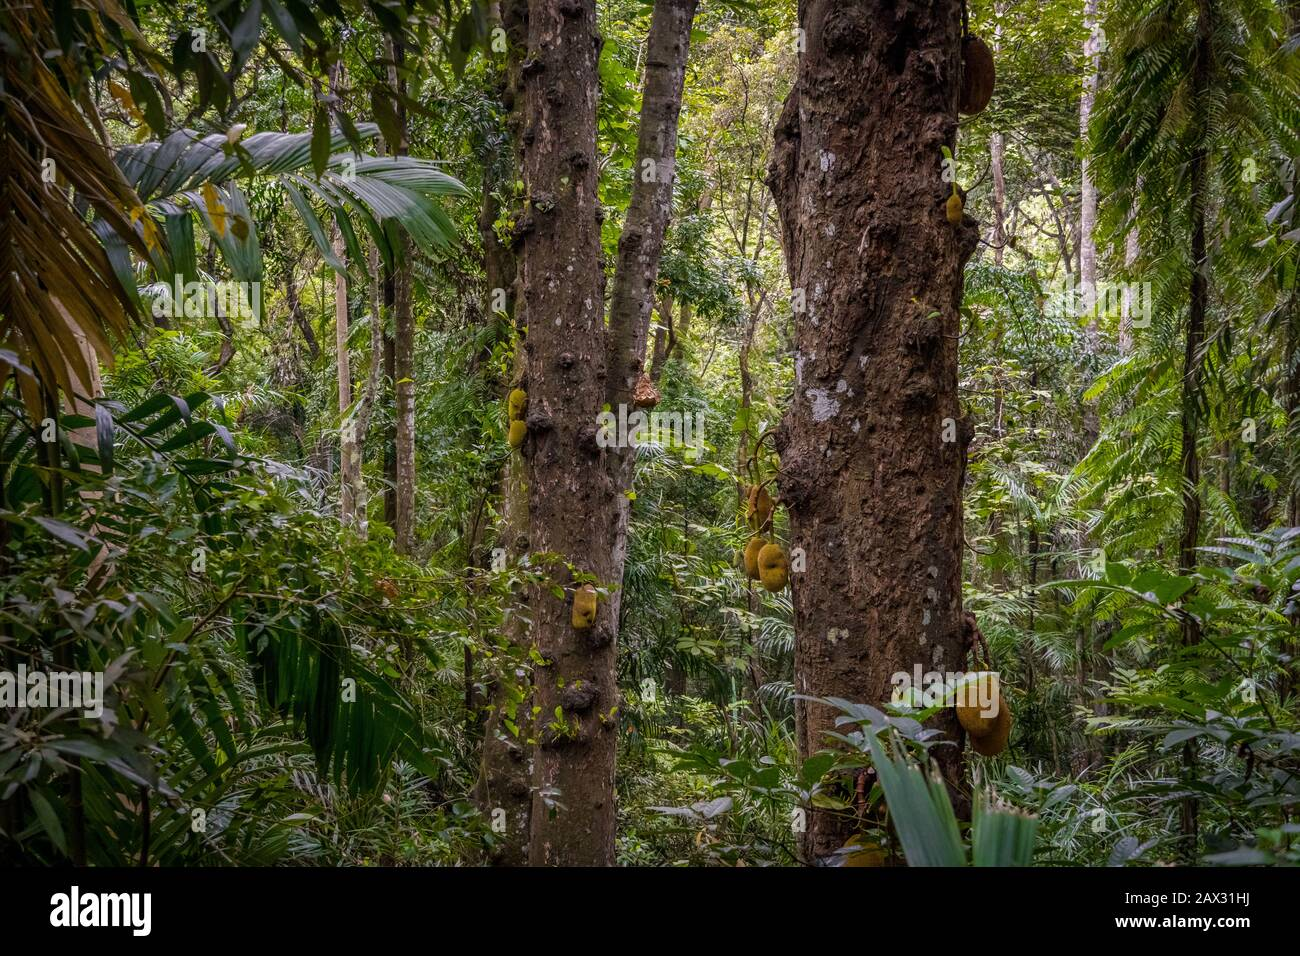 rainforest can be classified as tropical rainforest or temperate rainforest, but other types have been described. Old Ancient Old Trees With Giant Fruits In The Jungle Rainforest Background Stock Photo Alamy